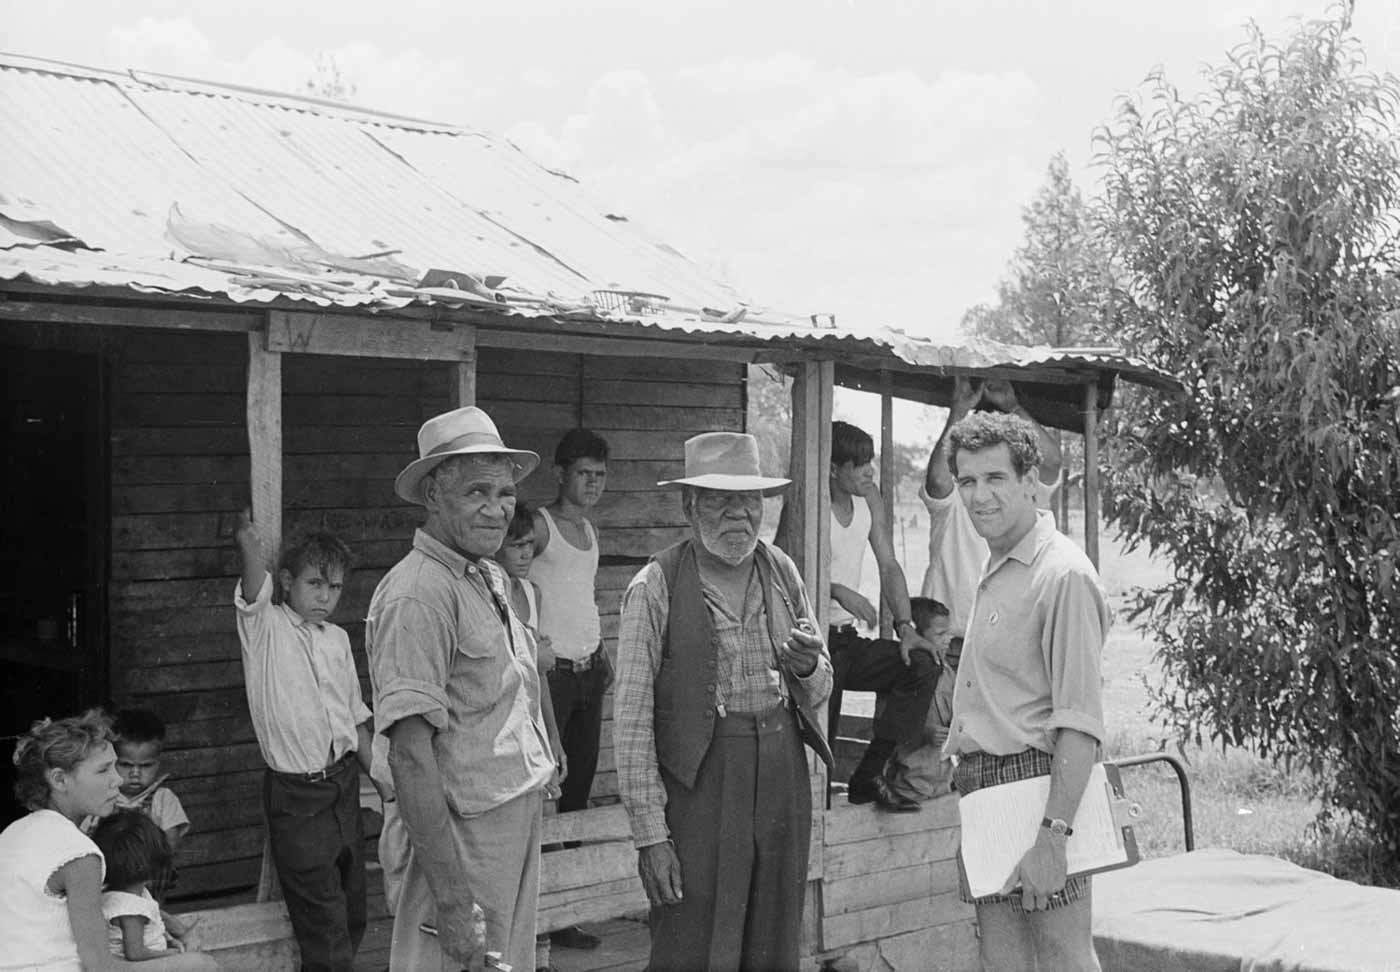 Black and white photo of a group of people standing around and in front of a wood shack. One man is holding a clipboard and appears to be in discussion with two other men.